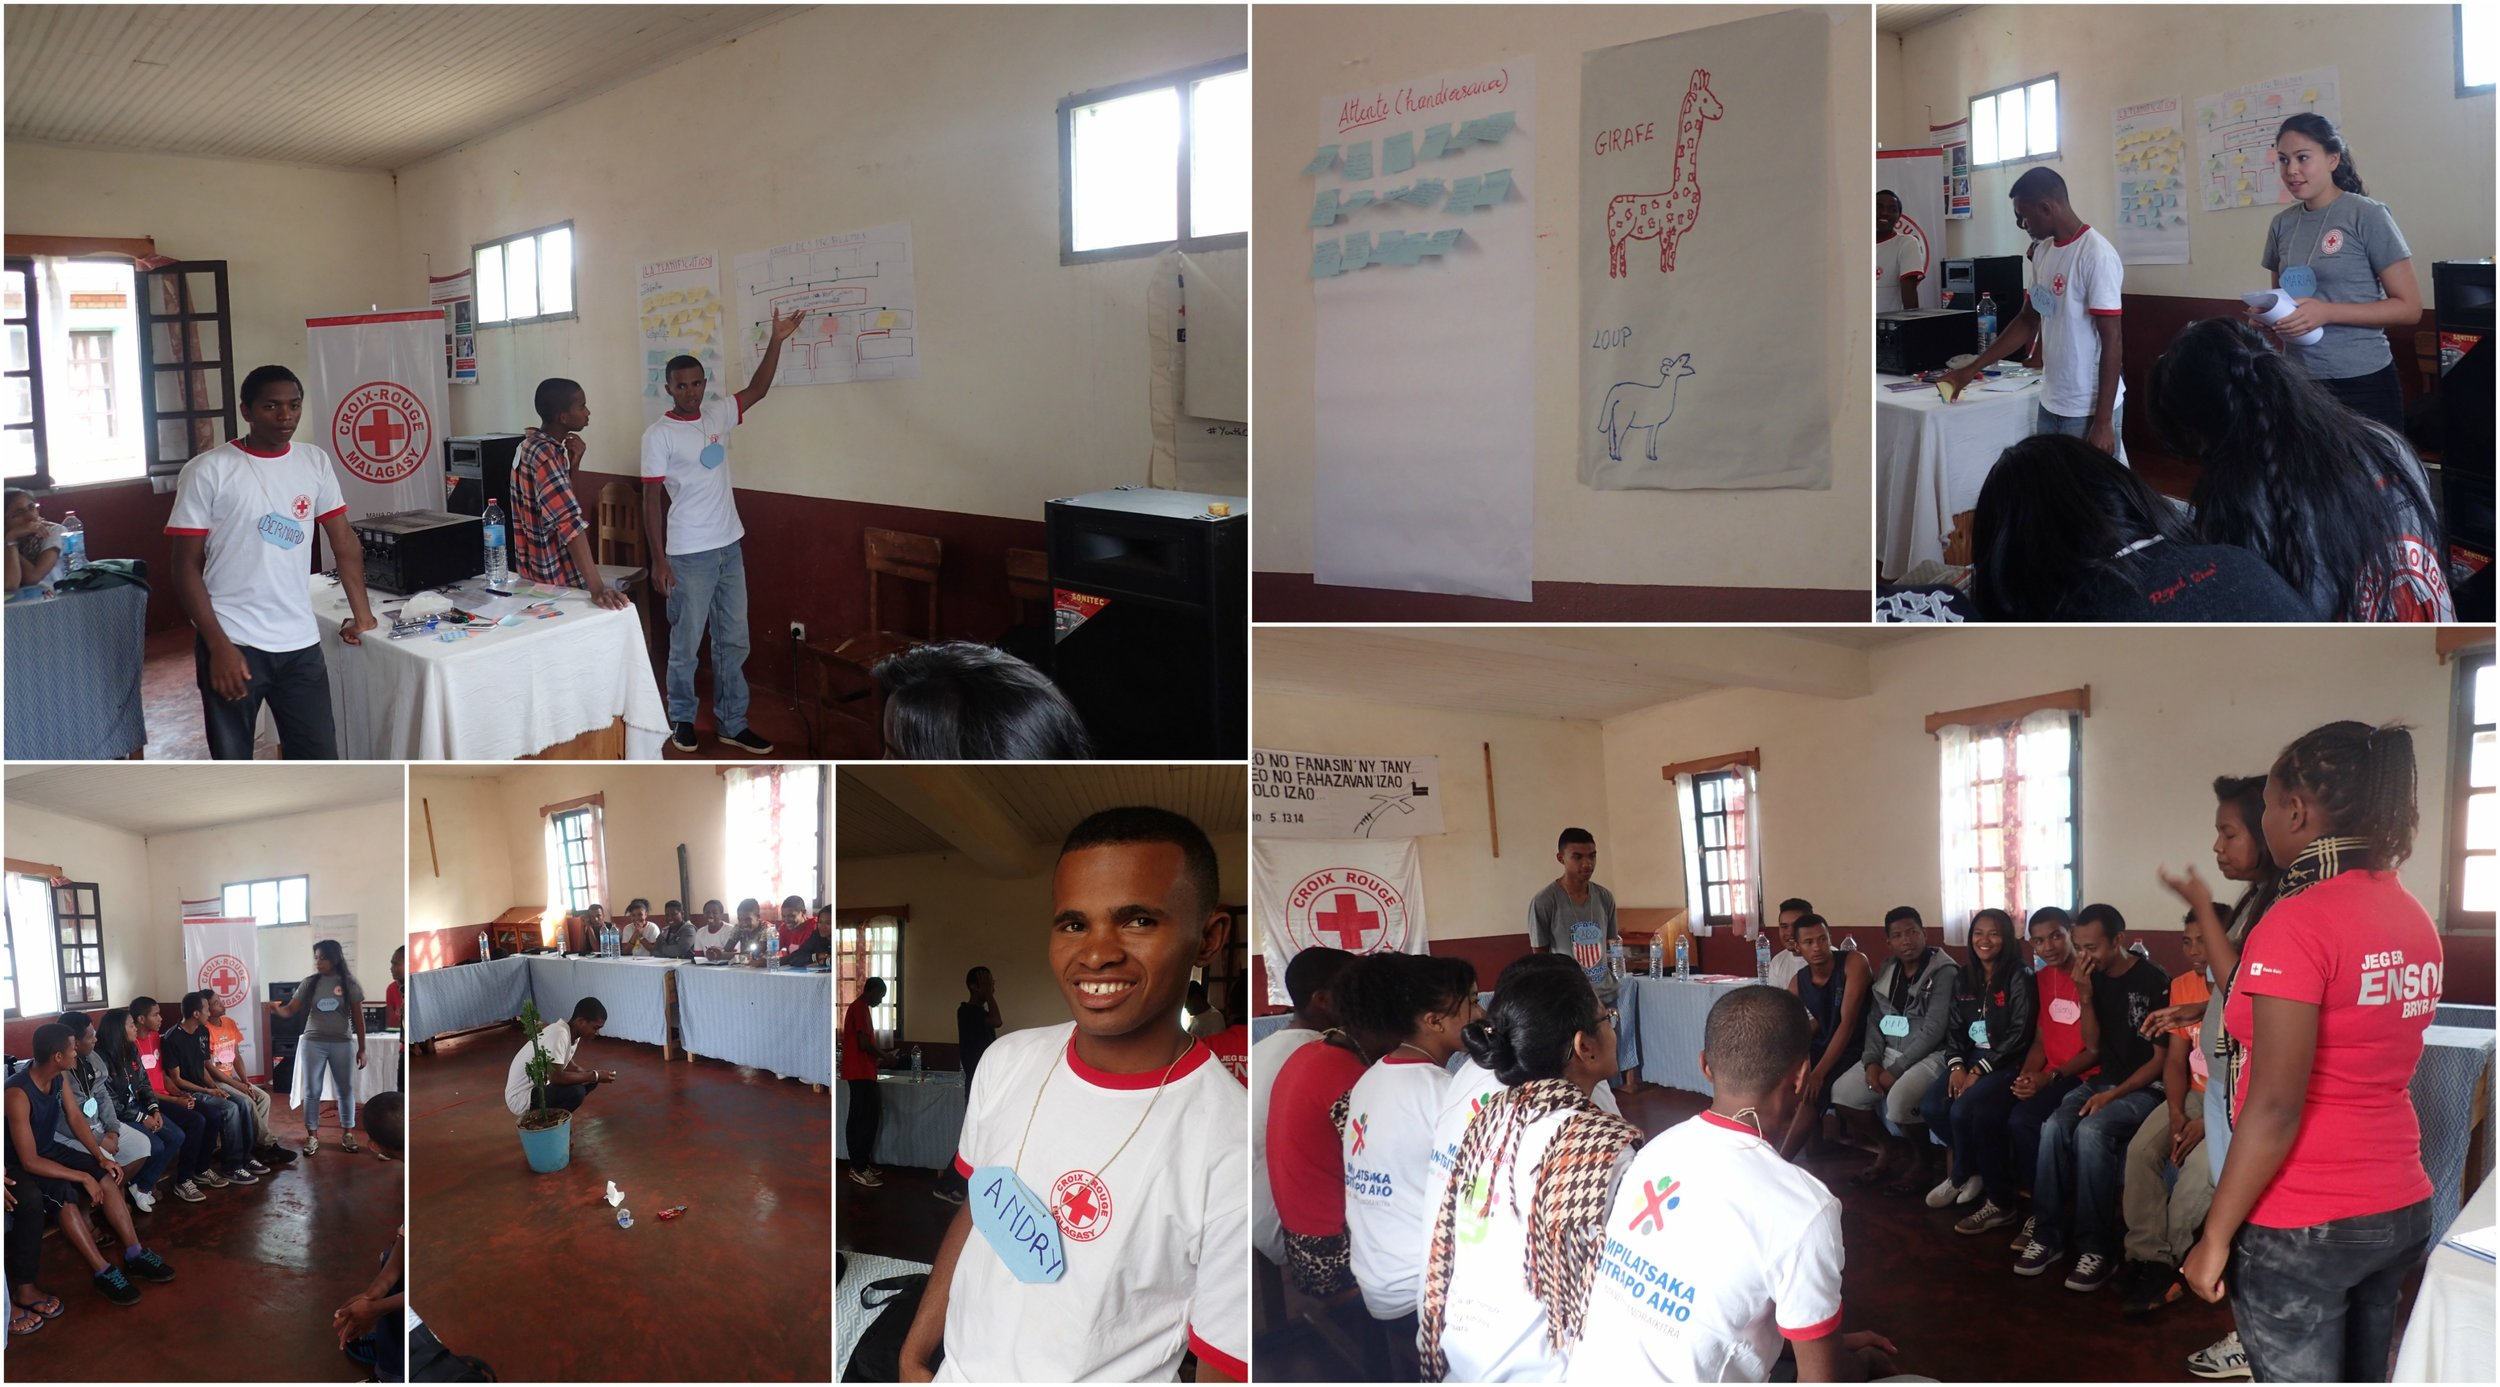 The participants were eager to learn from each other through sessions about non-violent communication and problem analysis and presentations of their Red Cross youth activities,